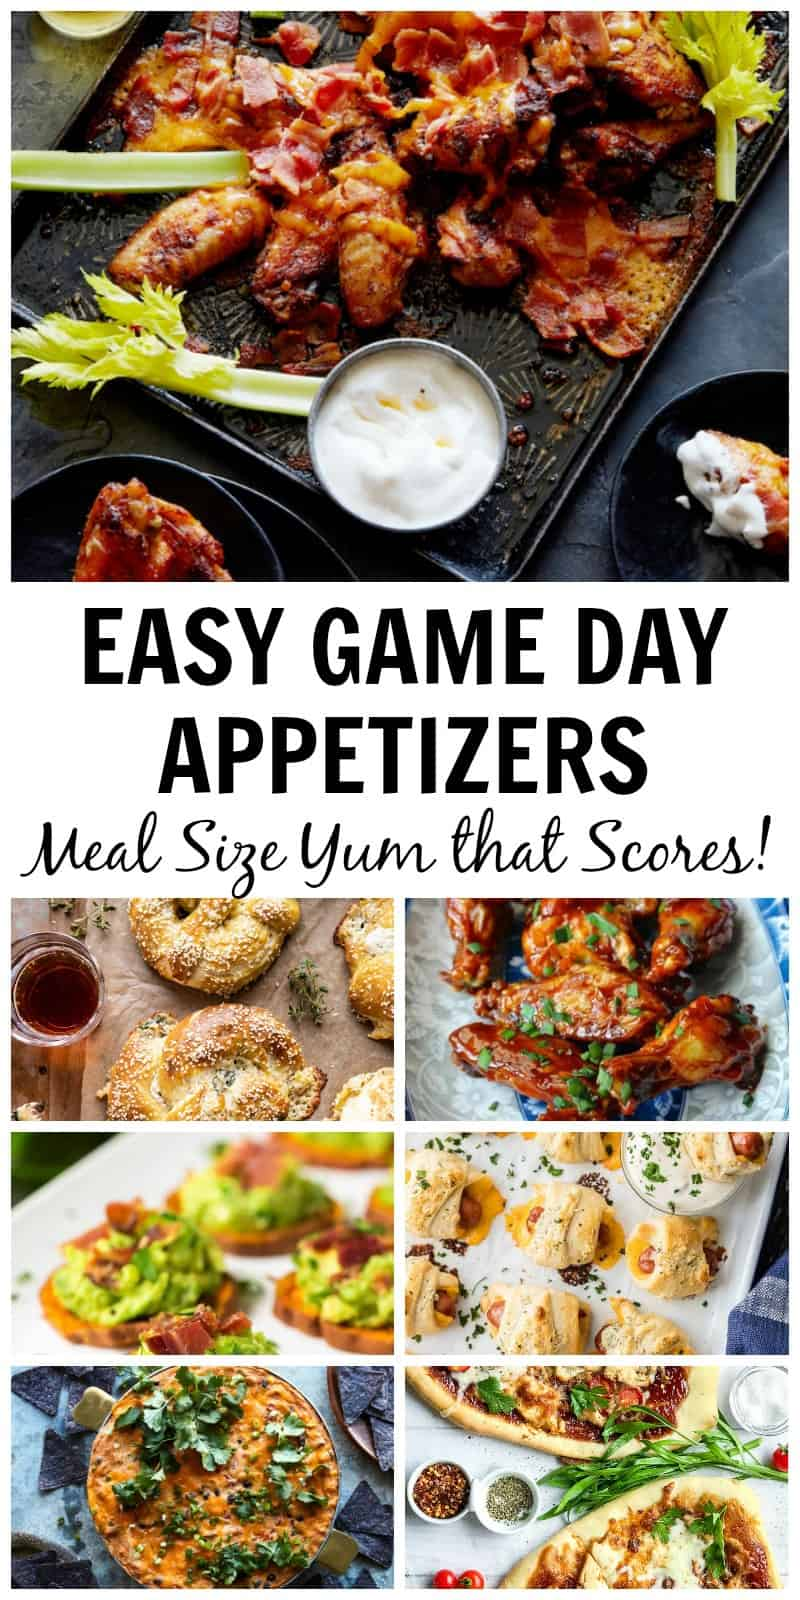 Easy Game Day Appetizers That Score Big on Game Day | 31Daily.com